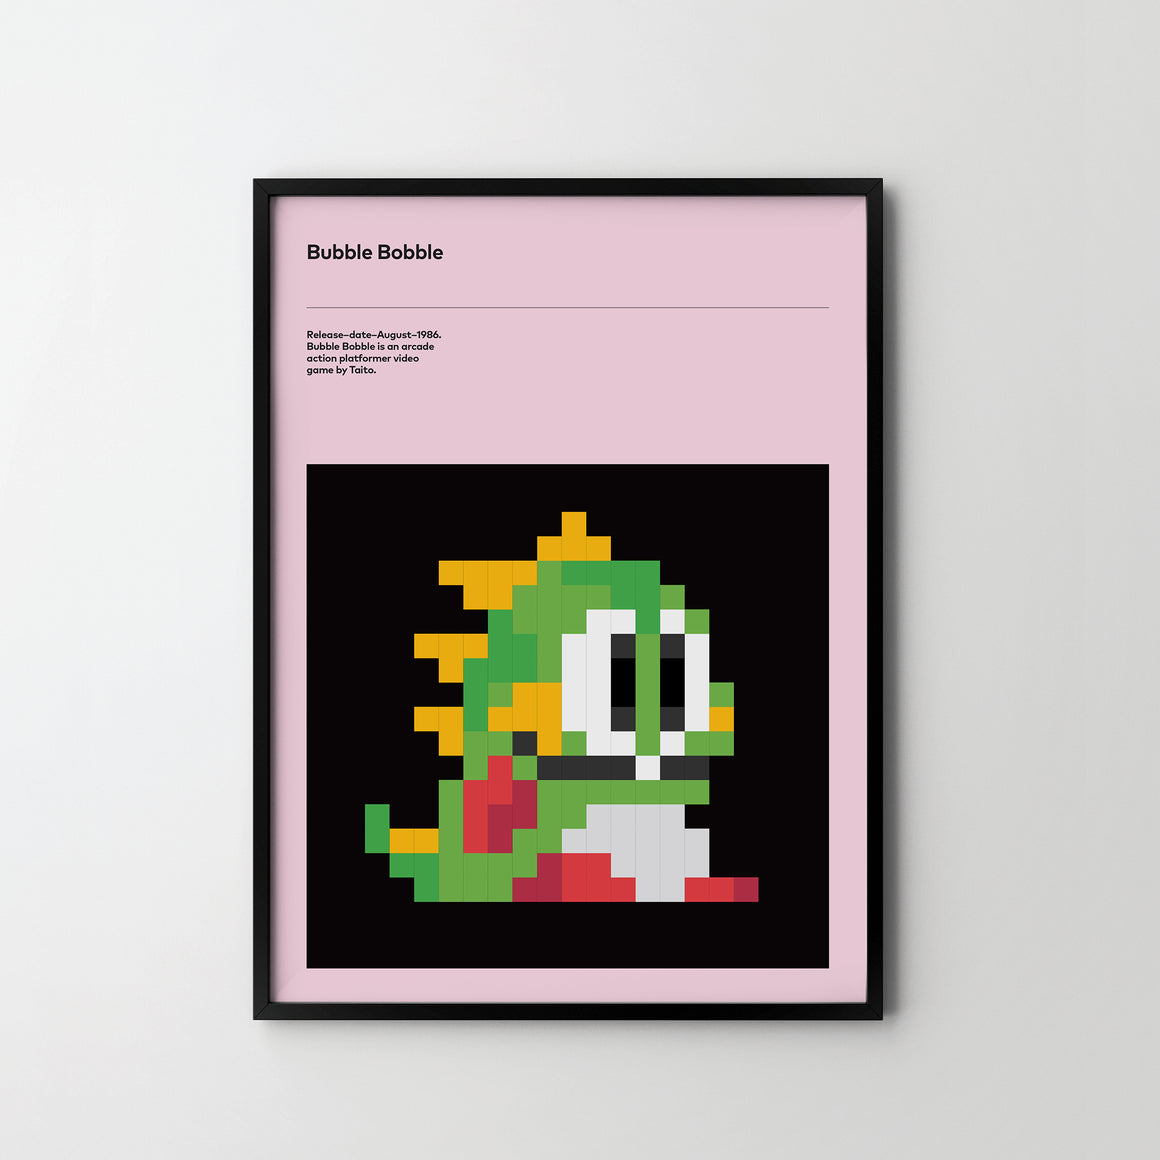 Bubble Bobble 1986 Poster Art Print, Retro Video Games Poster Bubble Bobble - SOA State of Art